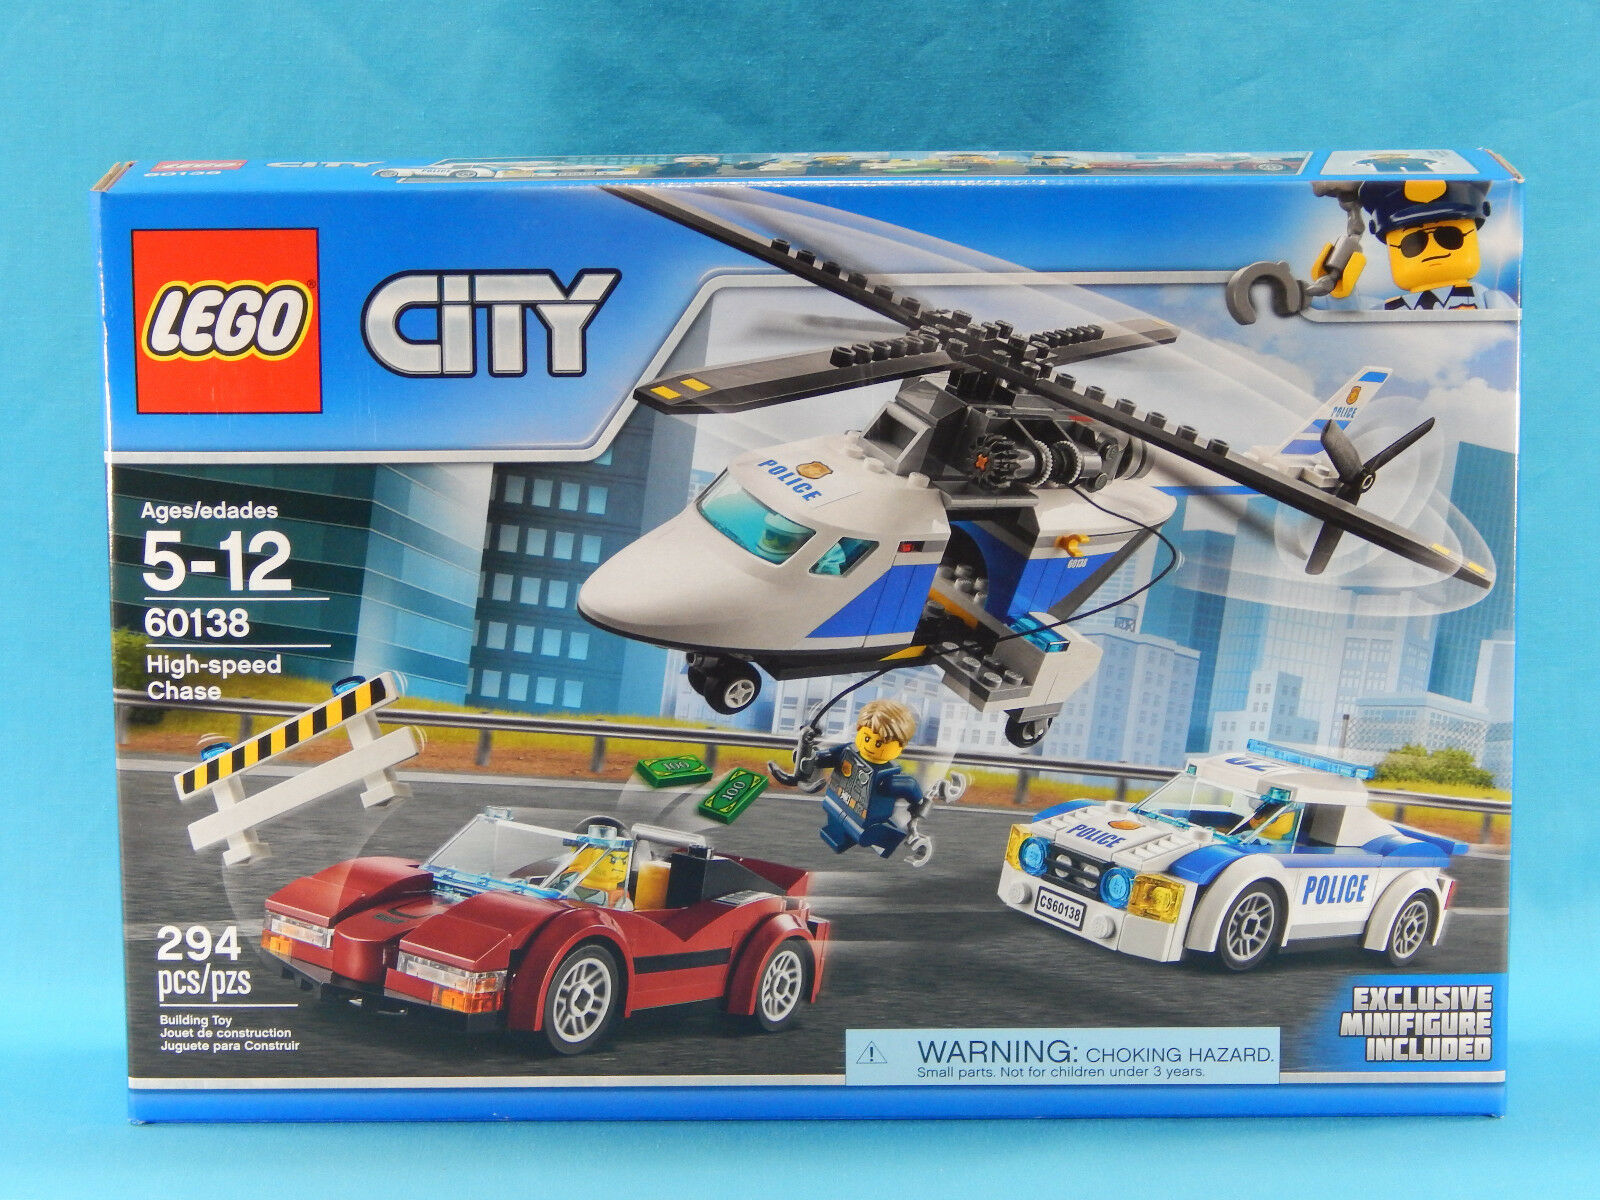 Lego City 60138 High-speed Chase 294pcs New Sealed 2017